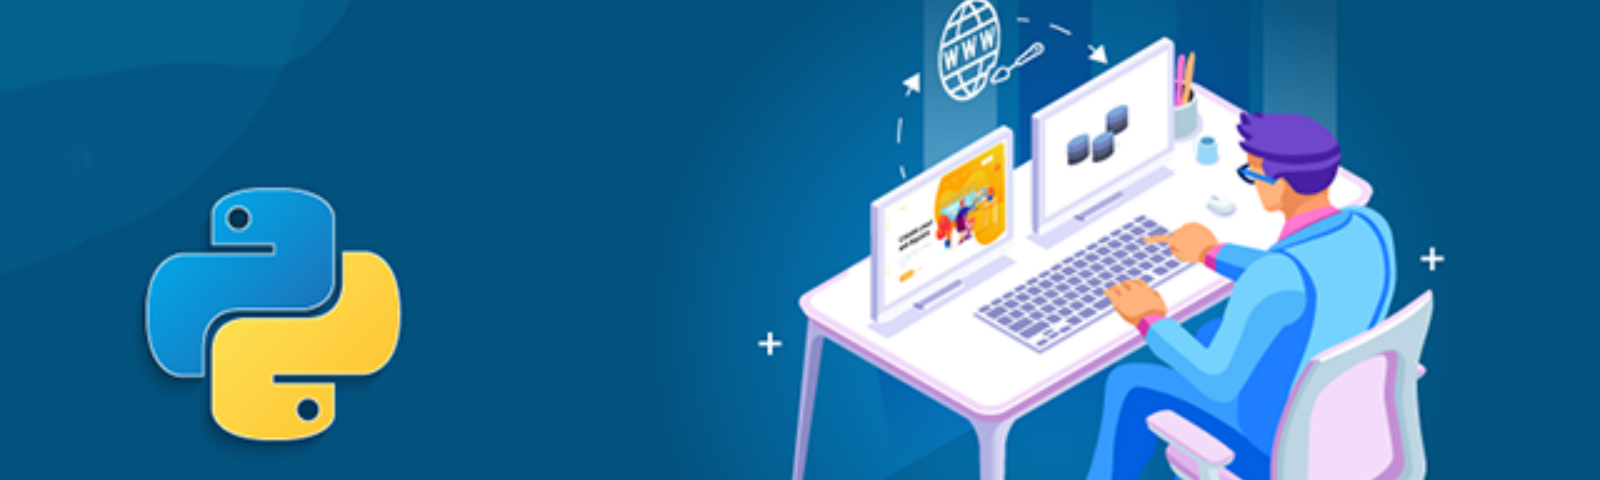 Web Scraping With Python - A Beginner's Guide   Edureka